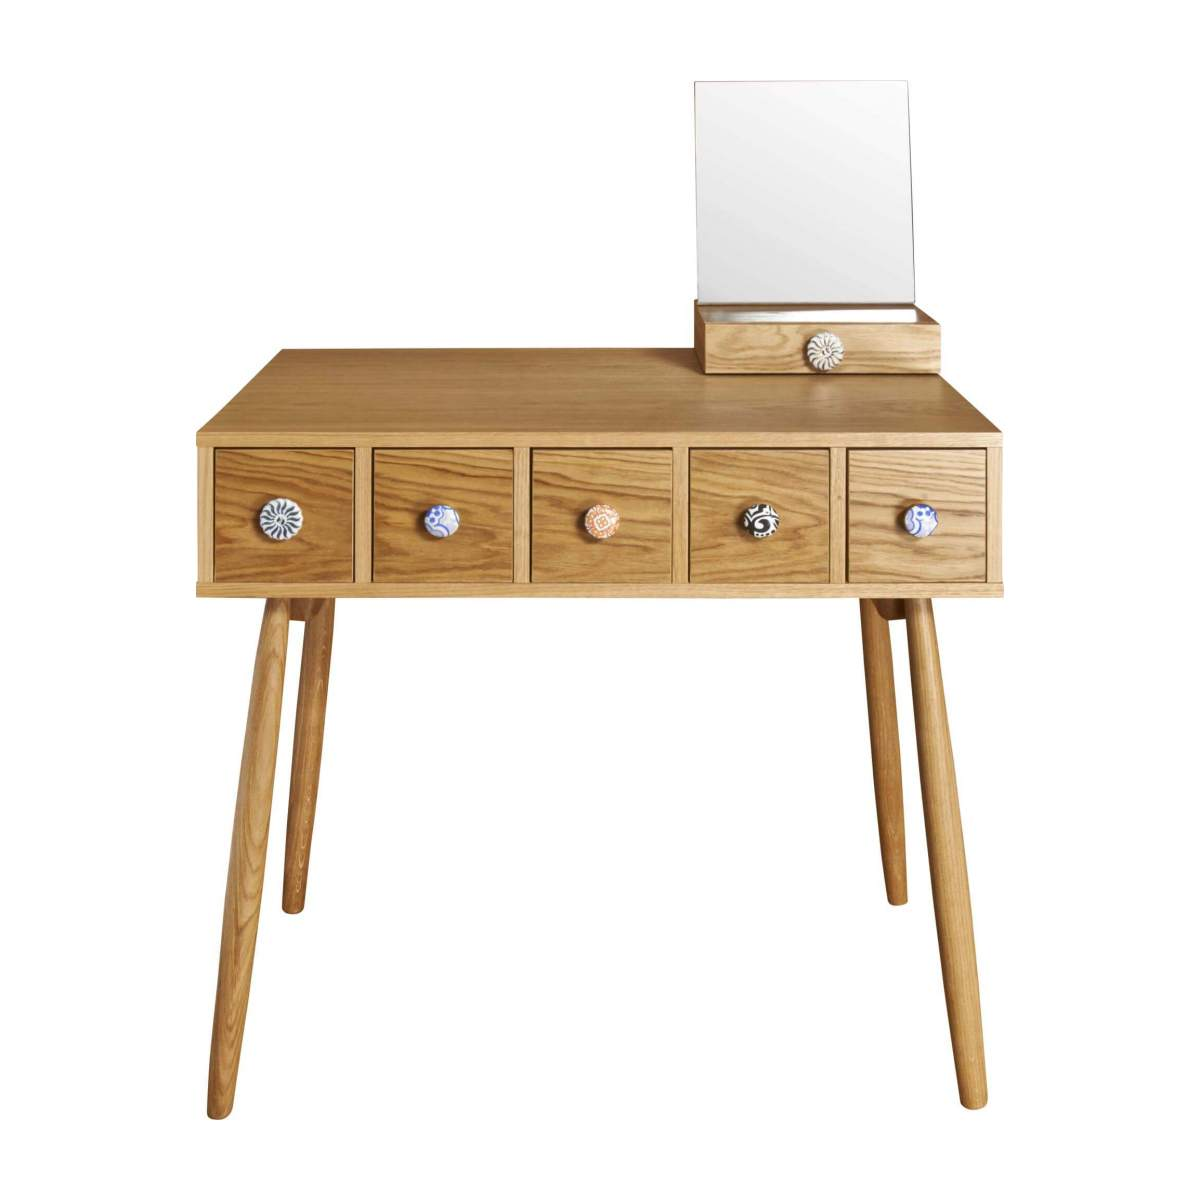 Mirrored 5 drawer dressing table n°2